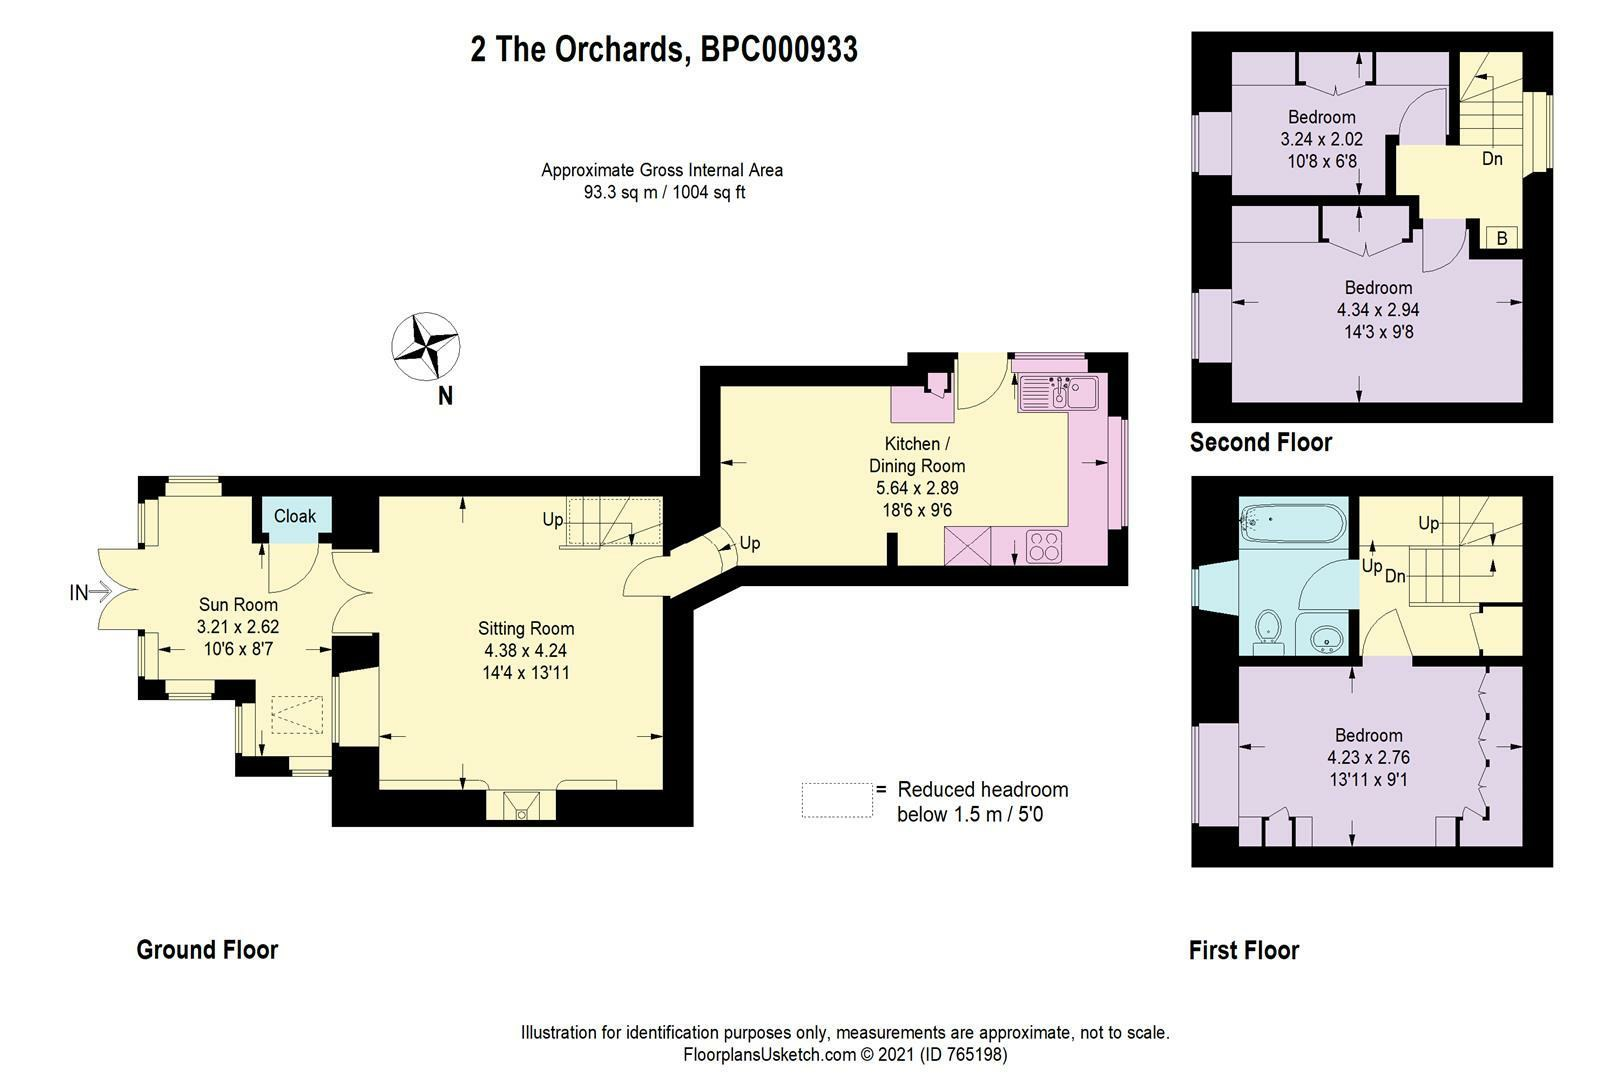 2 The Orchards - Brochure